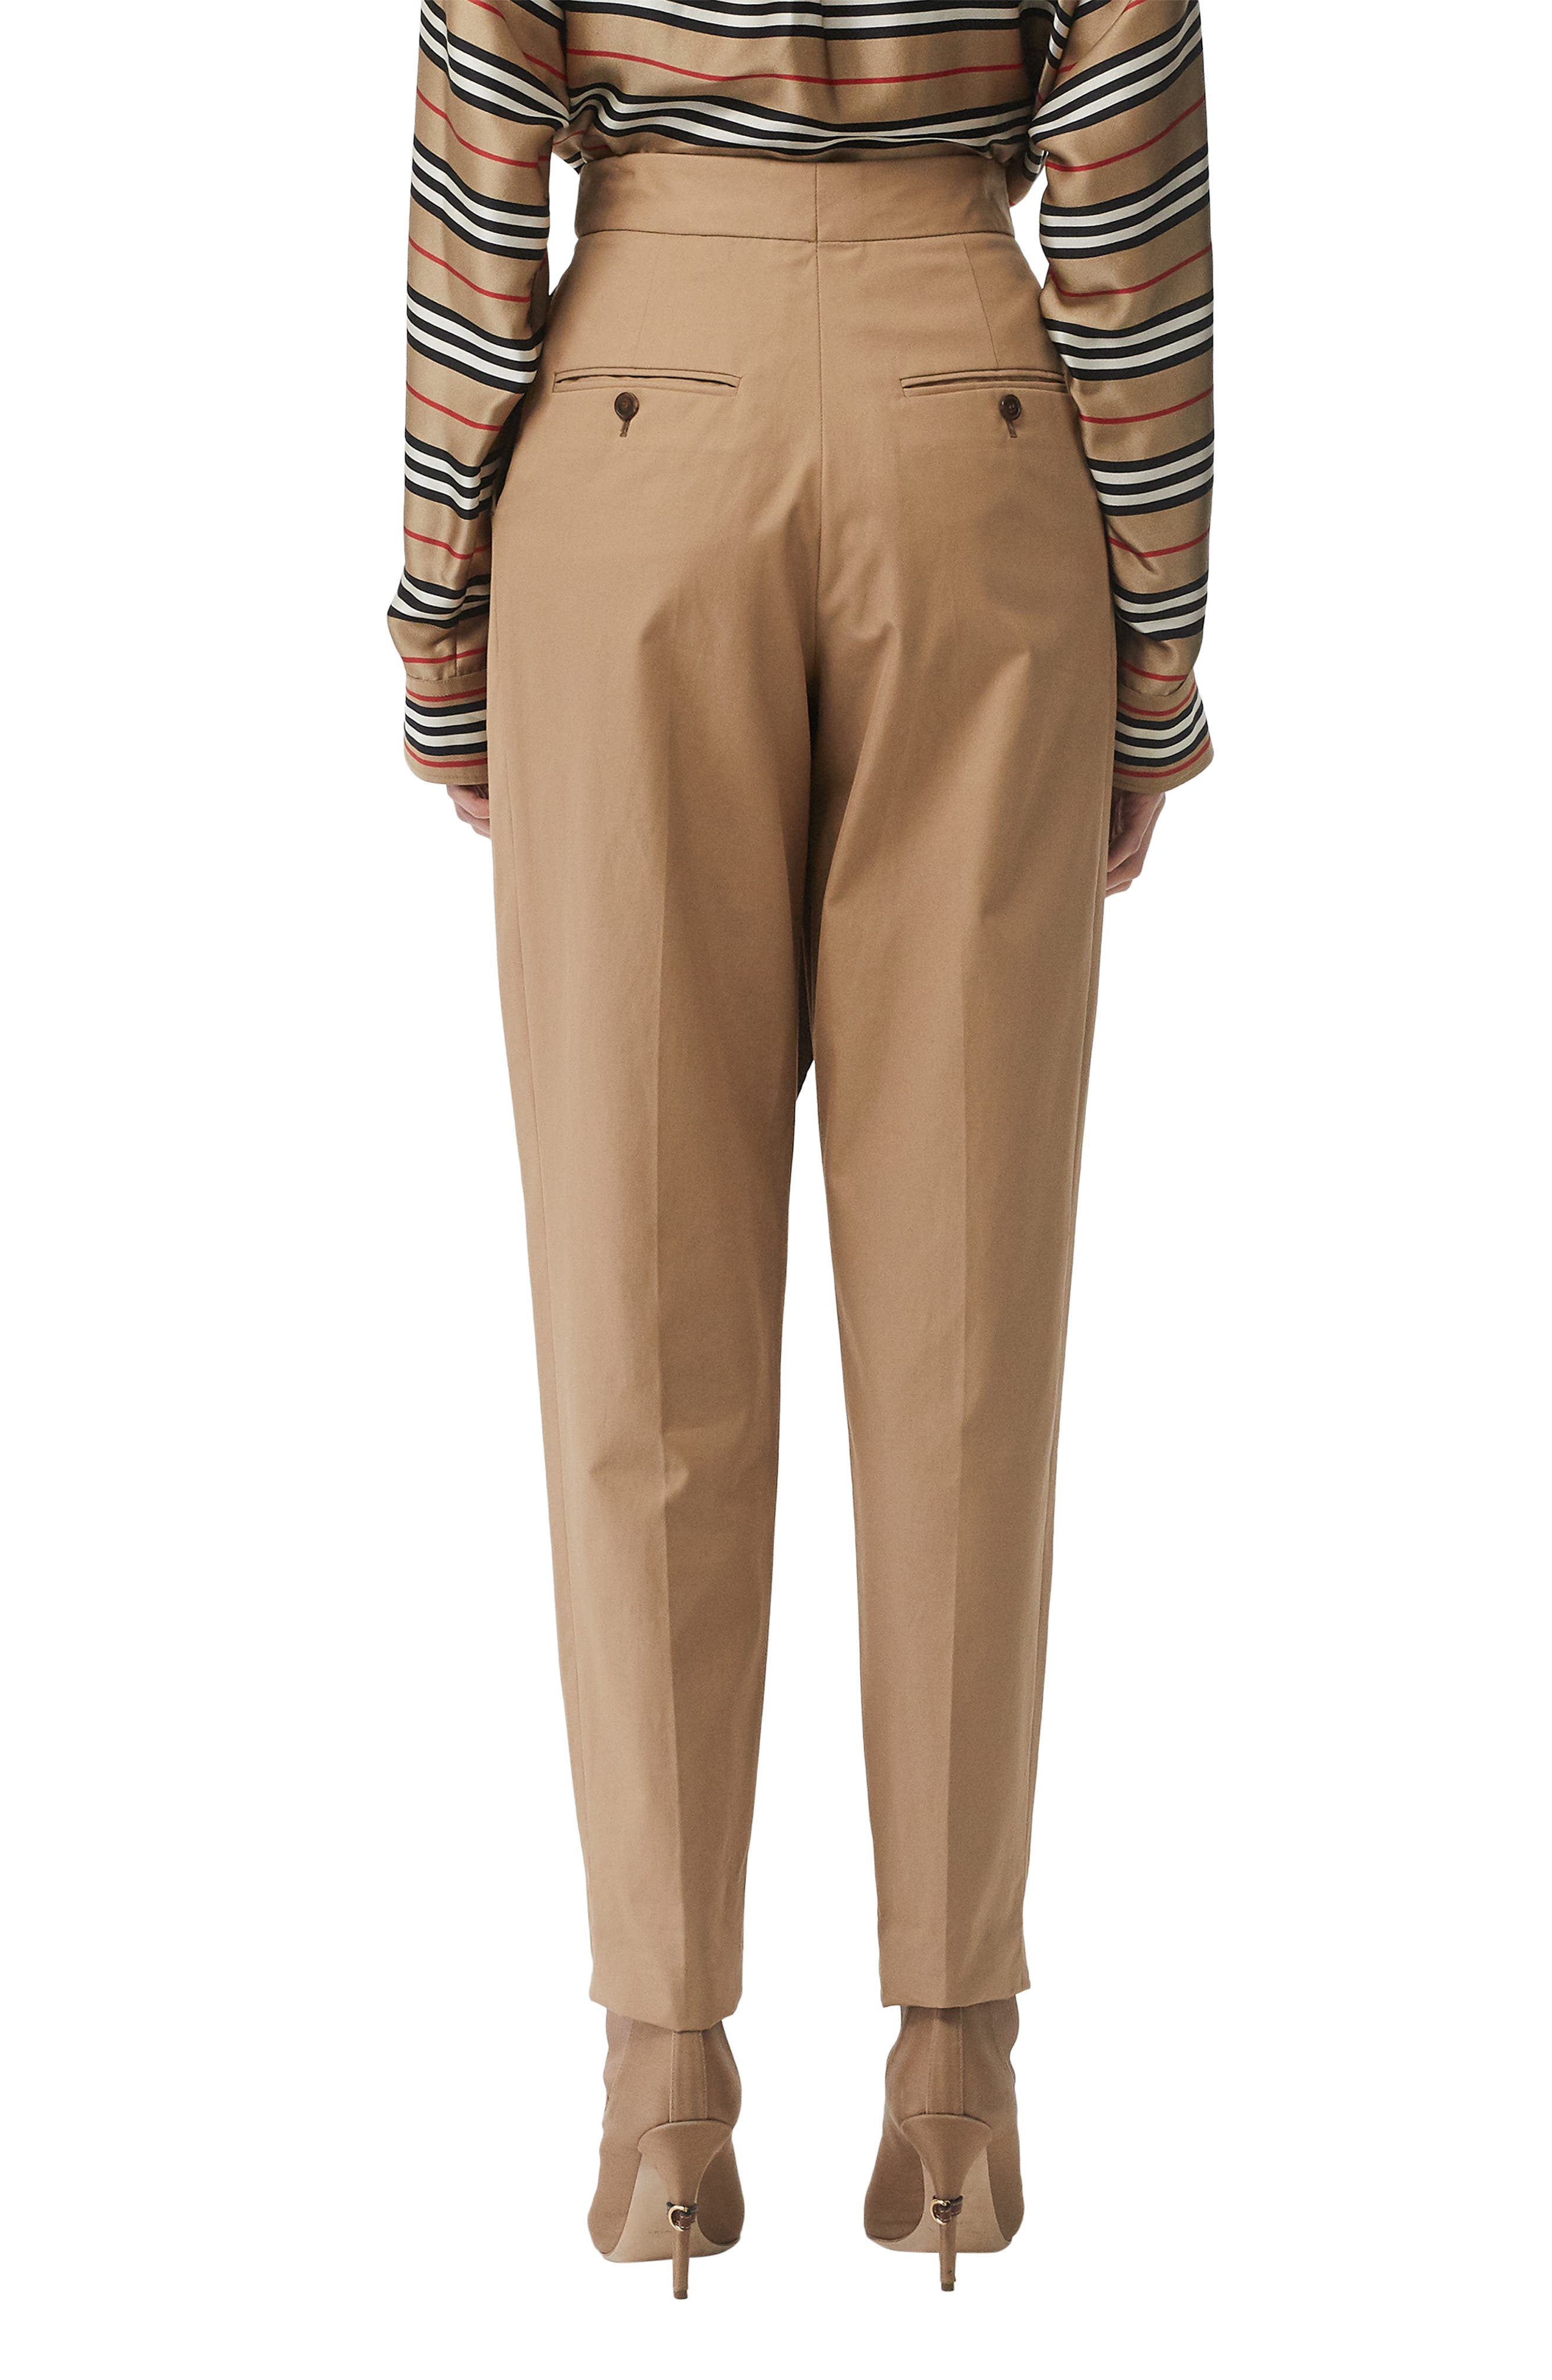 BURBERRY, Scarf Belt Cotton Trousers, Alternate thumbnail 2, color, DRIFTWOOD